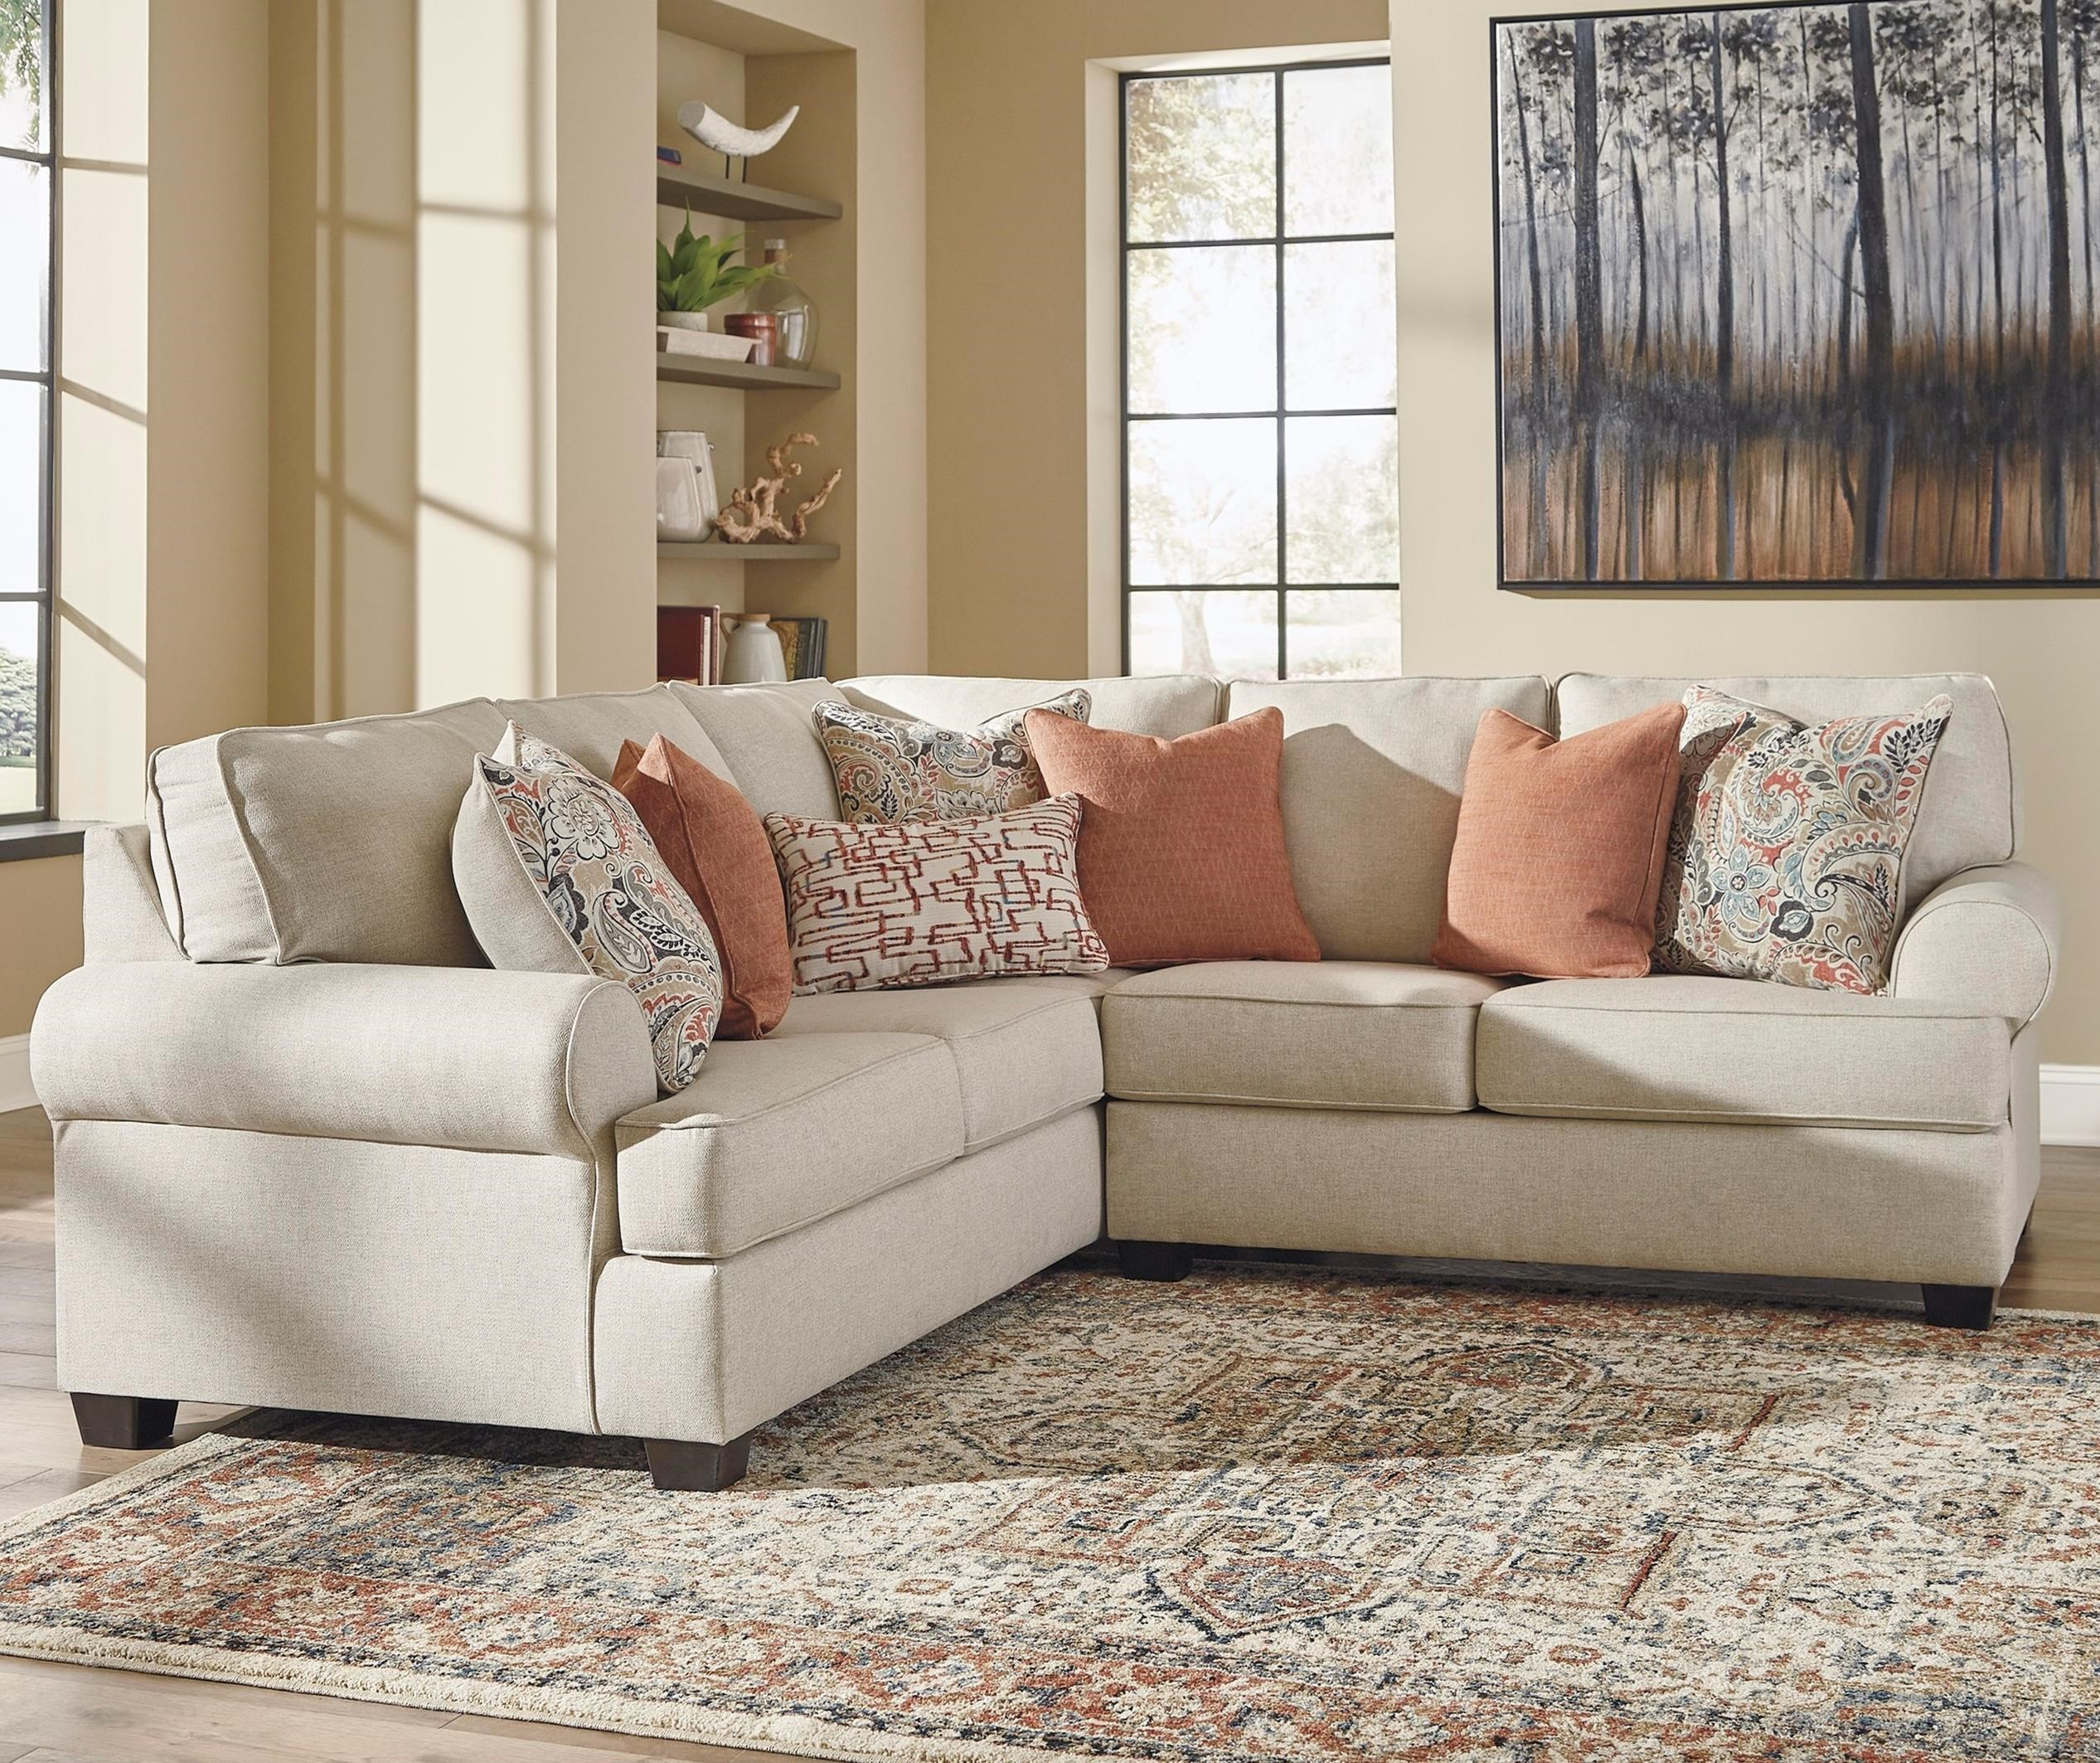 2-Piece Corner Sectional with Rolled Arms